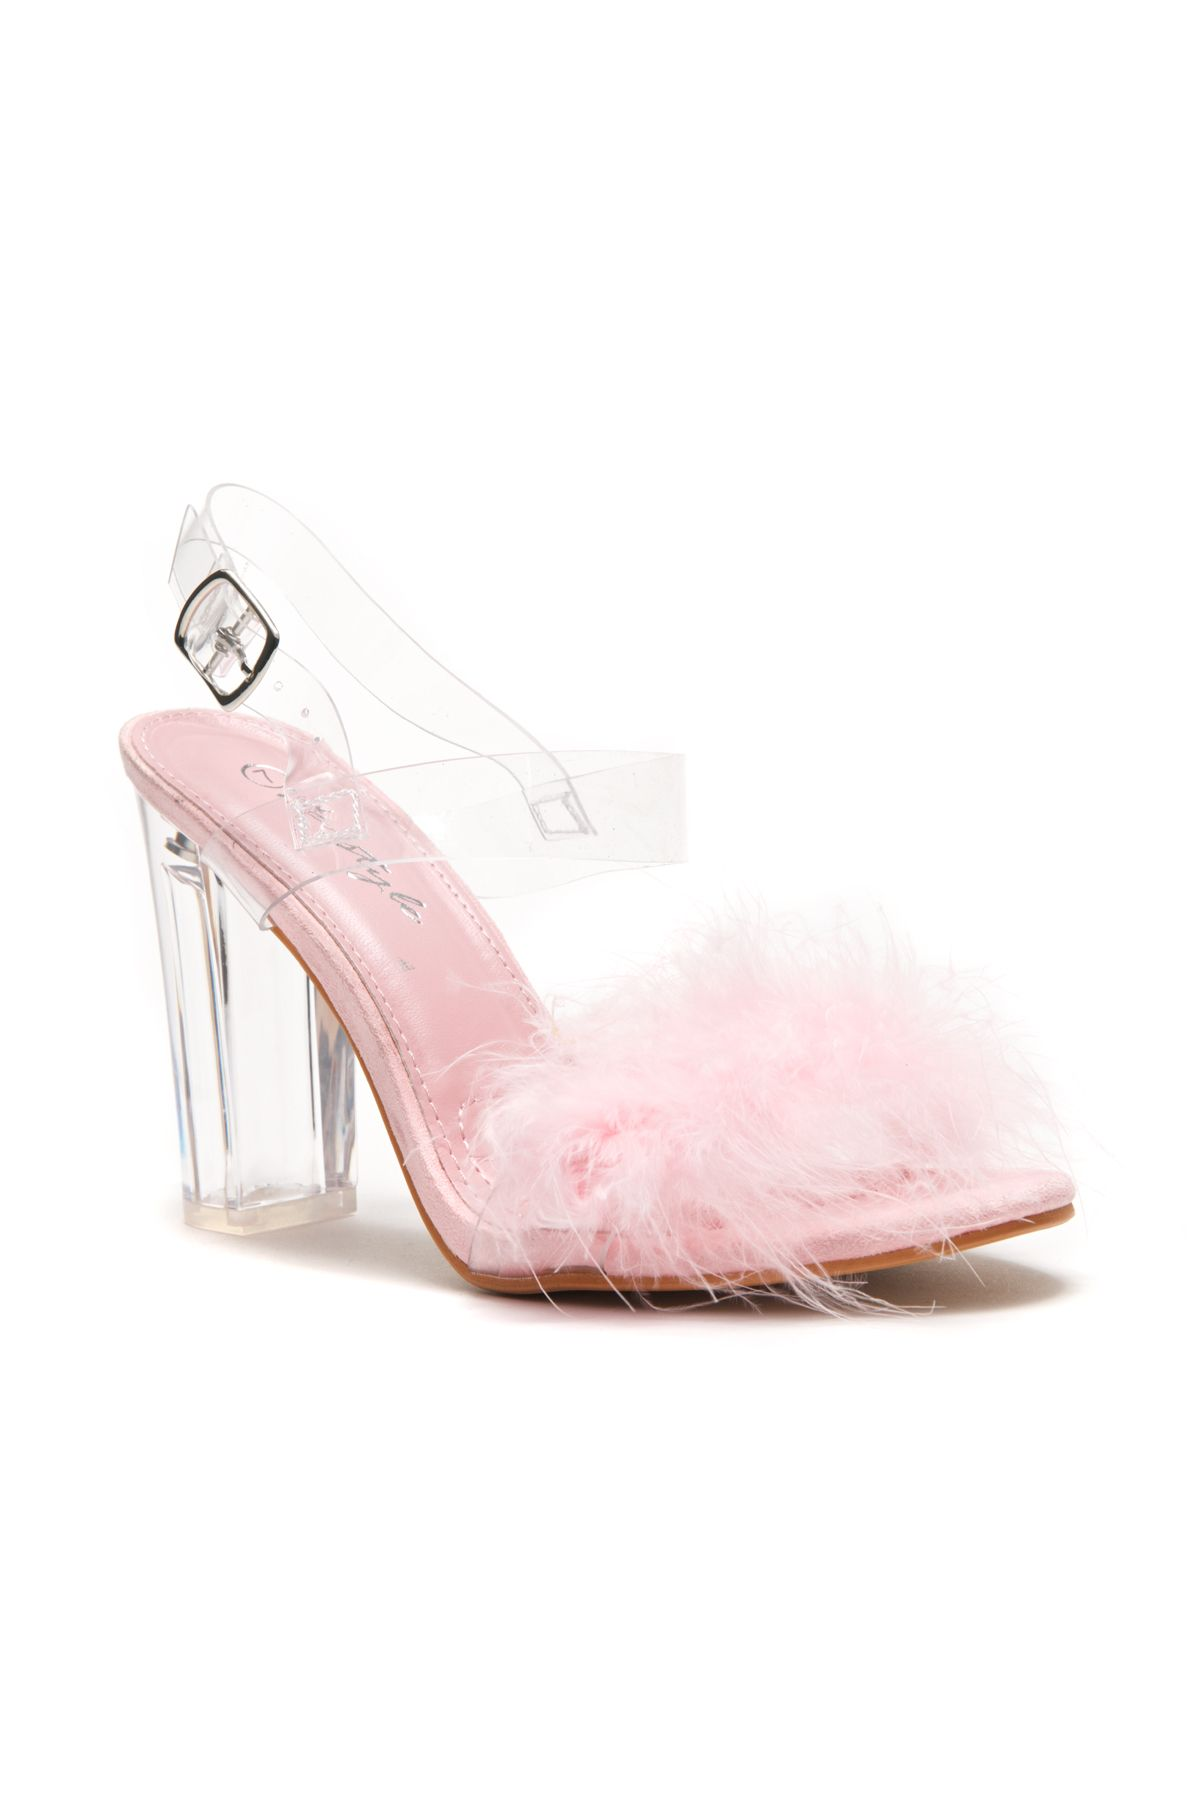 b241306f43daf HerStyle Women's Manmade Allinnaa Fluffy Fur Lucite Chunky Perspex ...